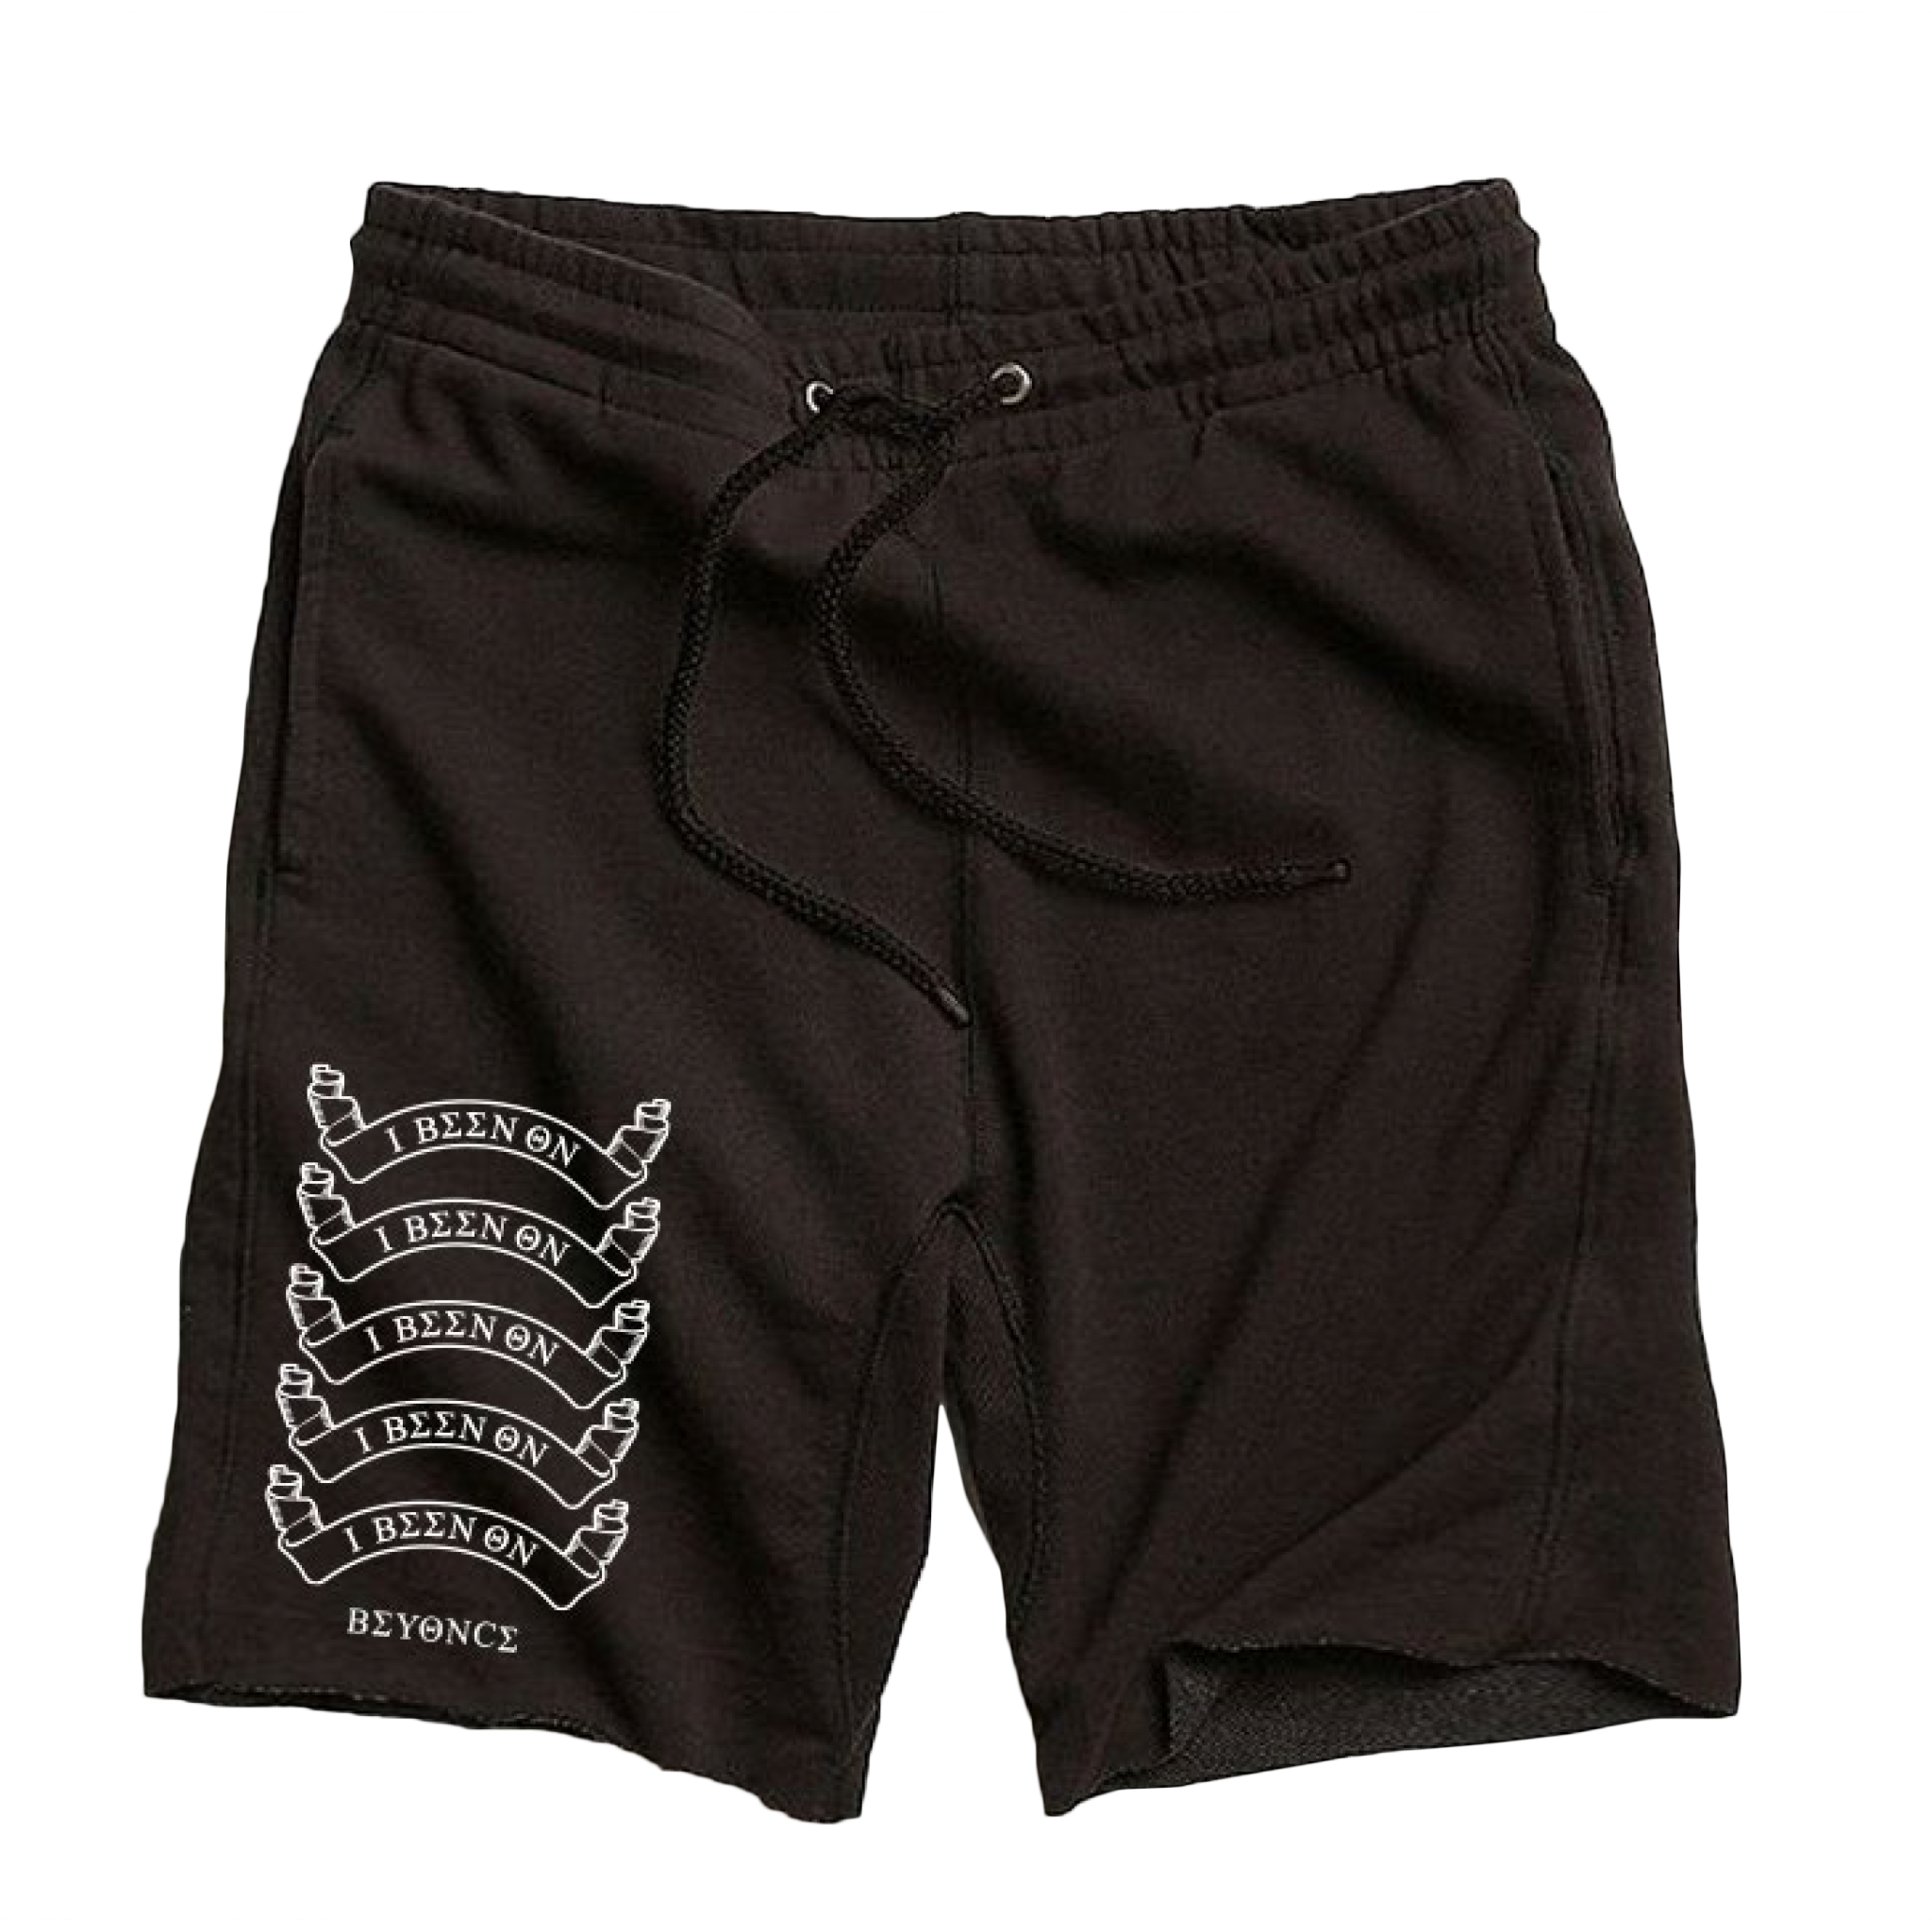 Shorts Png - I BEEN ON SHORTS